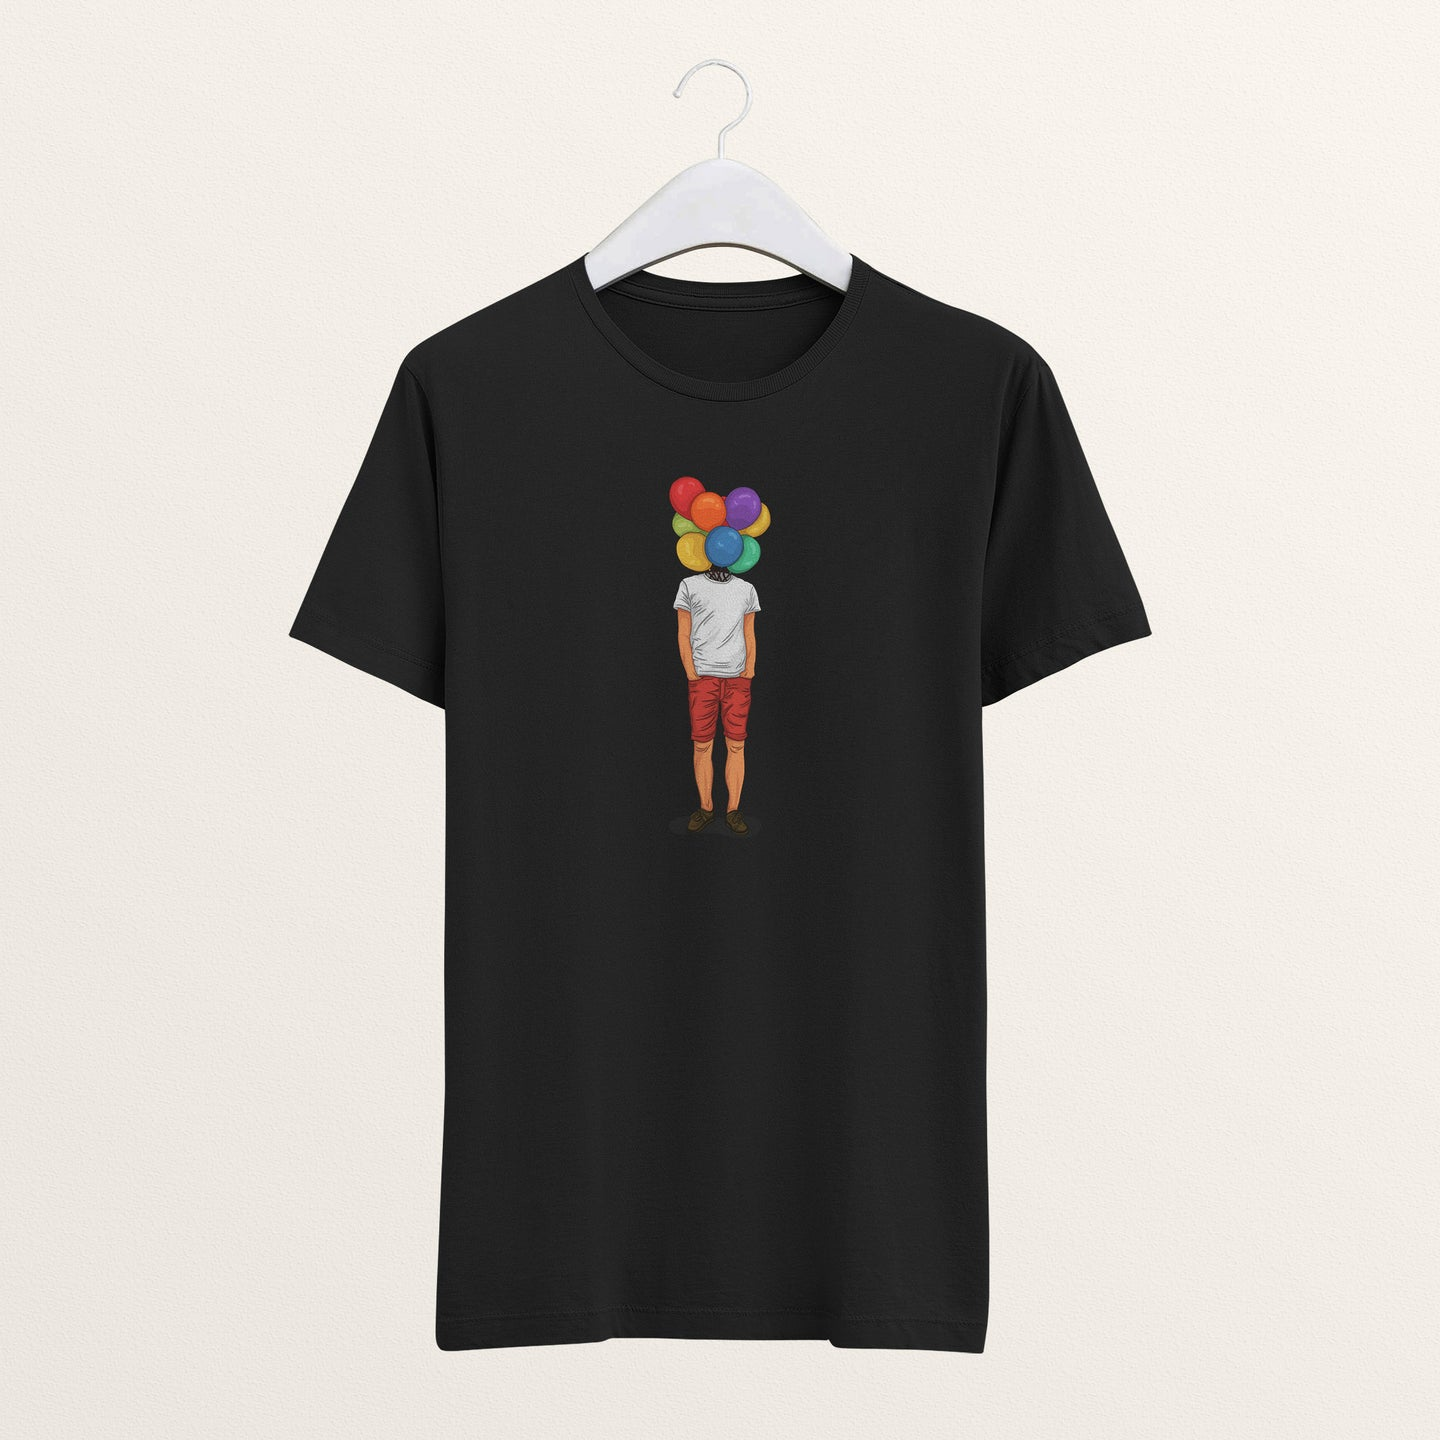 You've Got Balloons T-Shirt